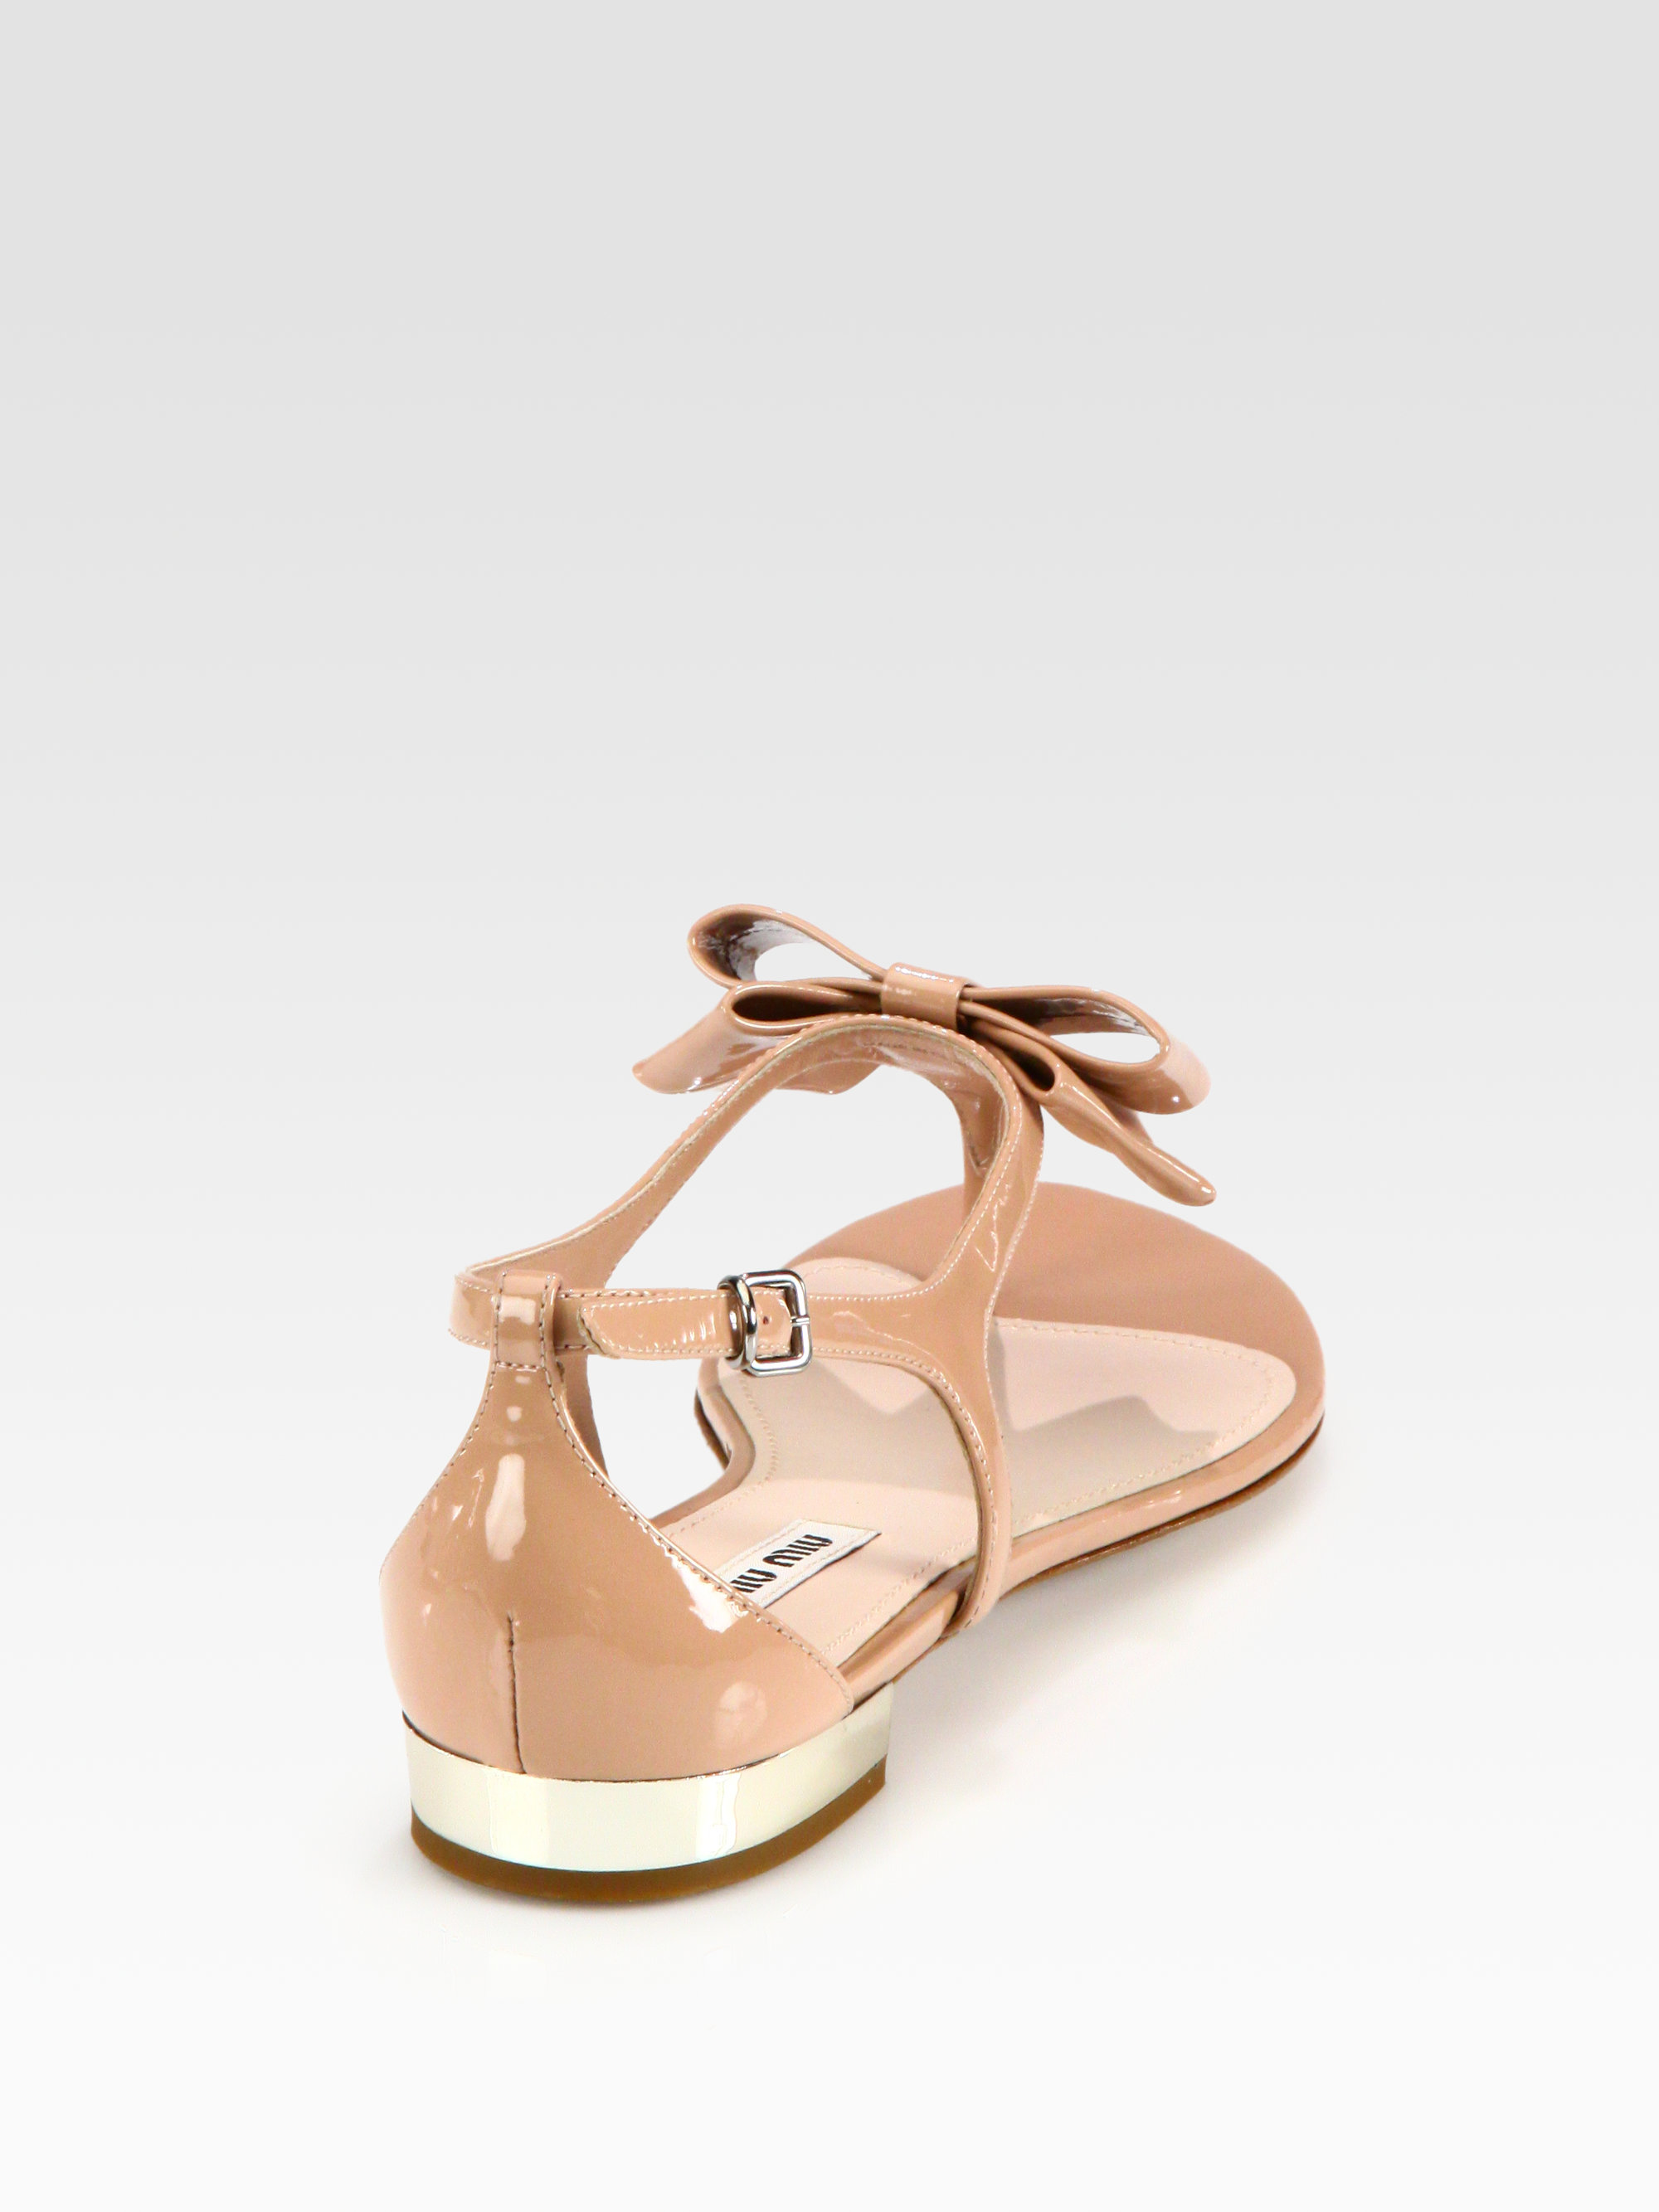 Classic Buy Cheap Outlet Store Miu Miu Patent leather slippers With Mastercard Sale Online Sale New ipUdXPjQSC